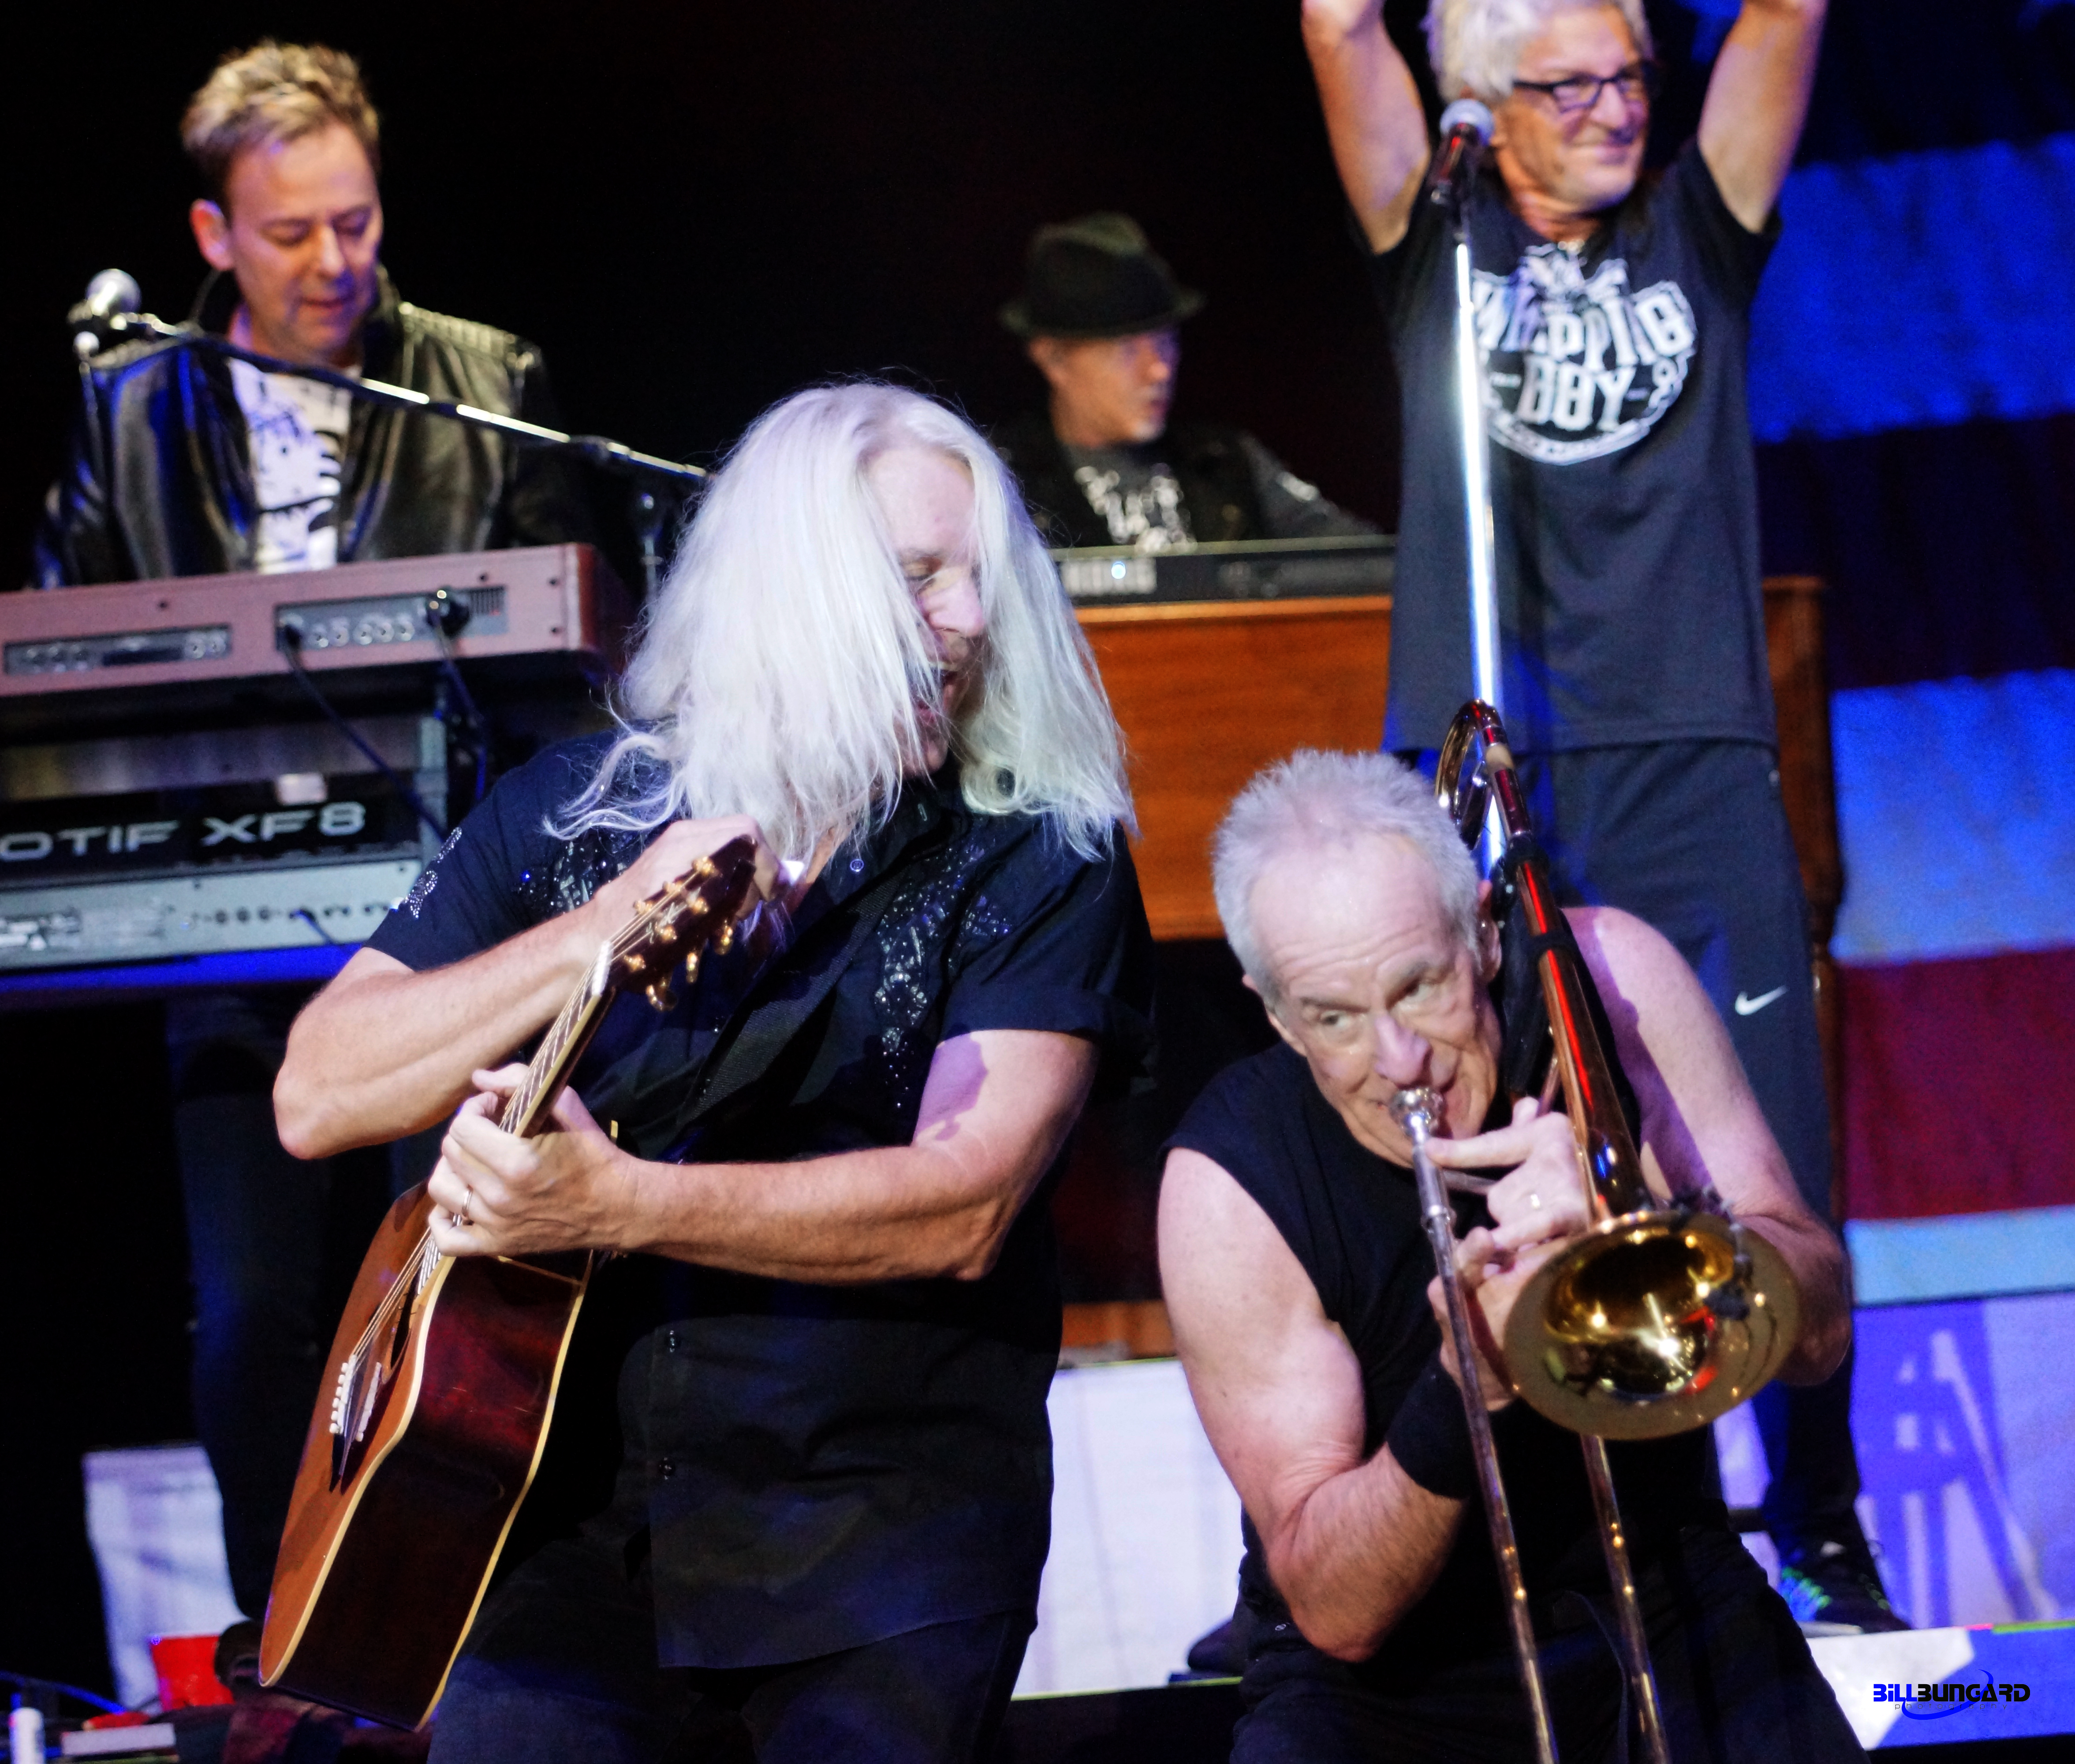 Chicago and REO Speedwagon together at The Puyallup Fair (Photo by Bill Bungard)